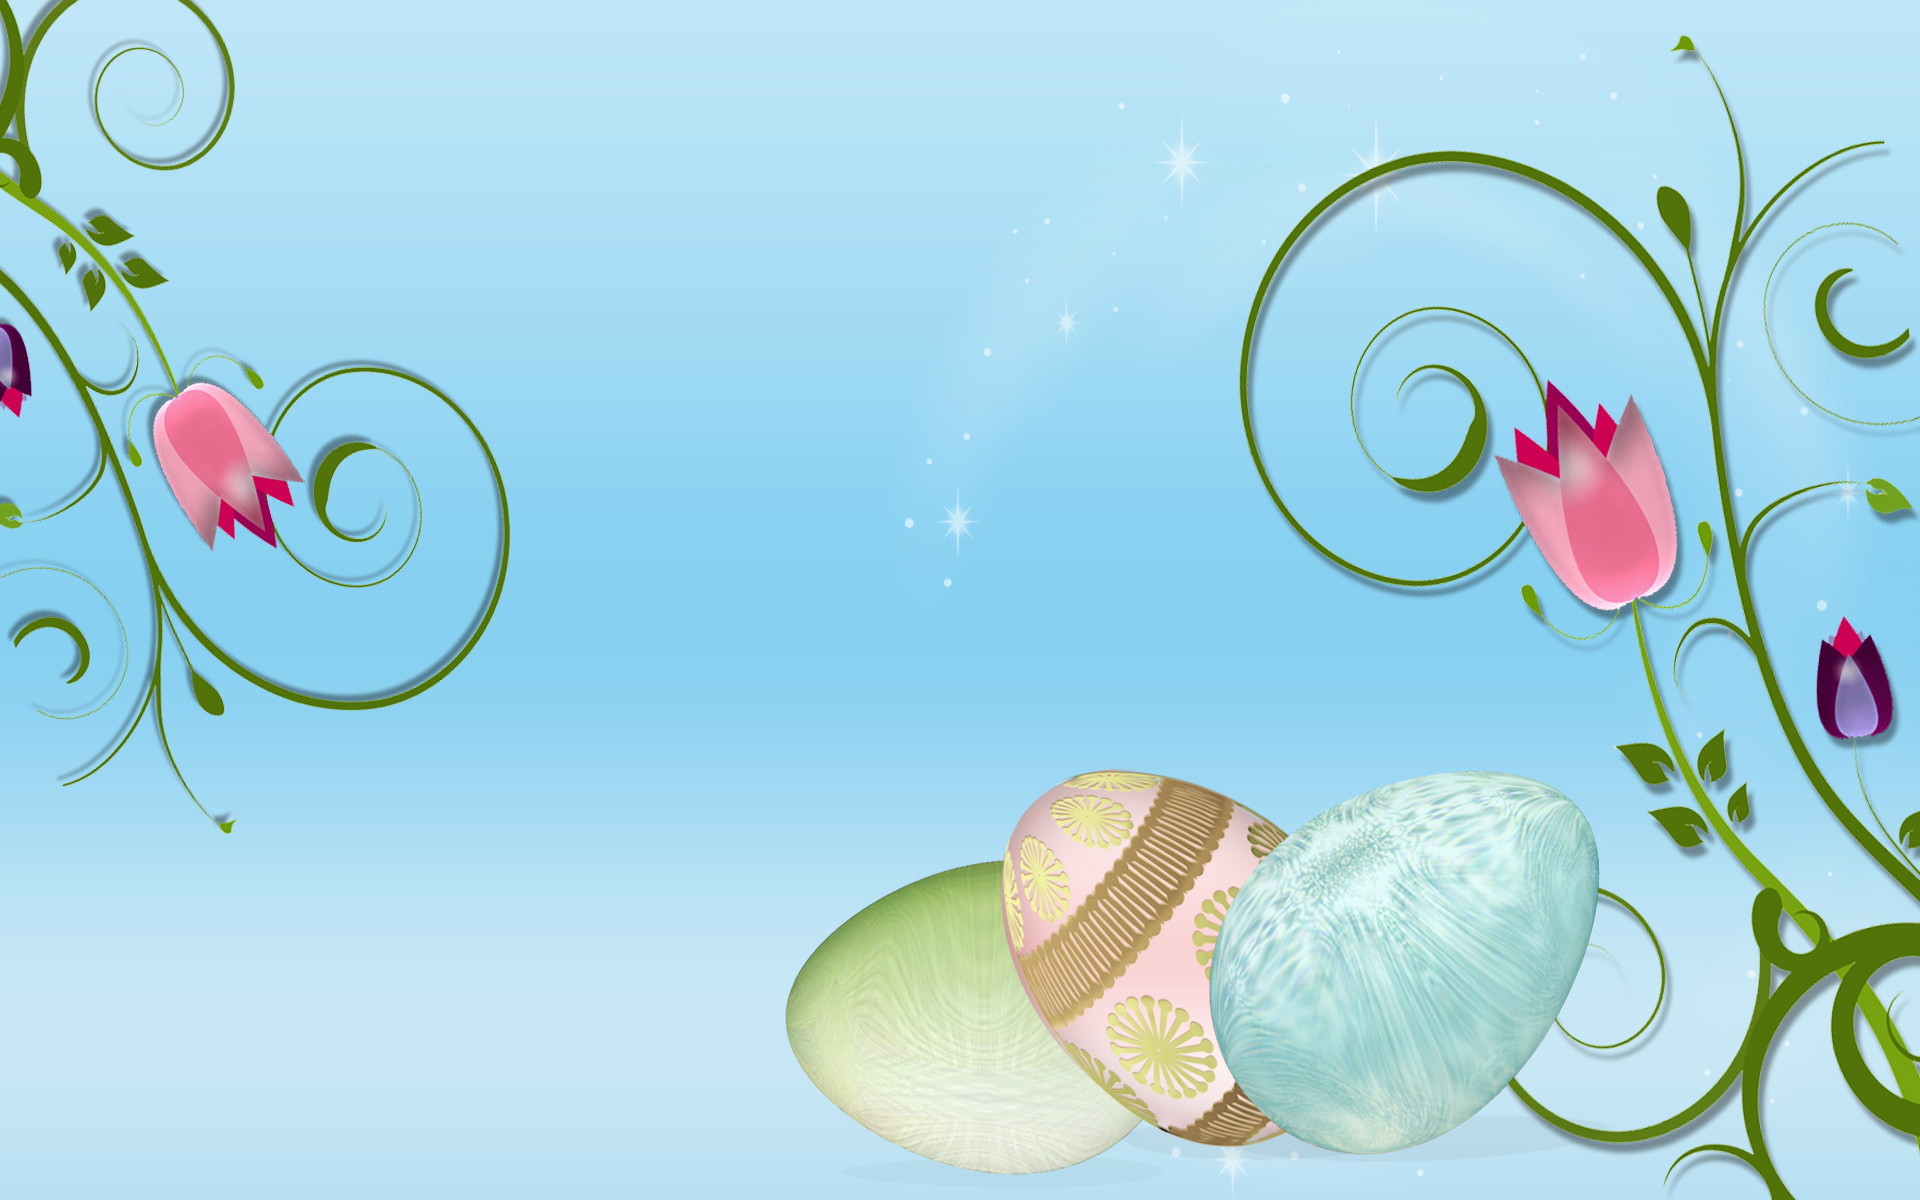 1920x1200 easter free wallpaper and screensavers free wallpaper screen savers: Easter  Screensavers Wallpaper